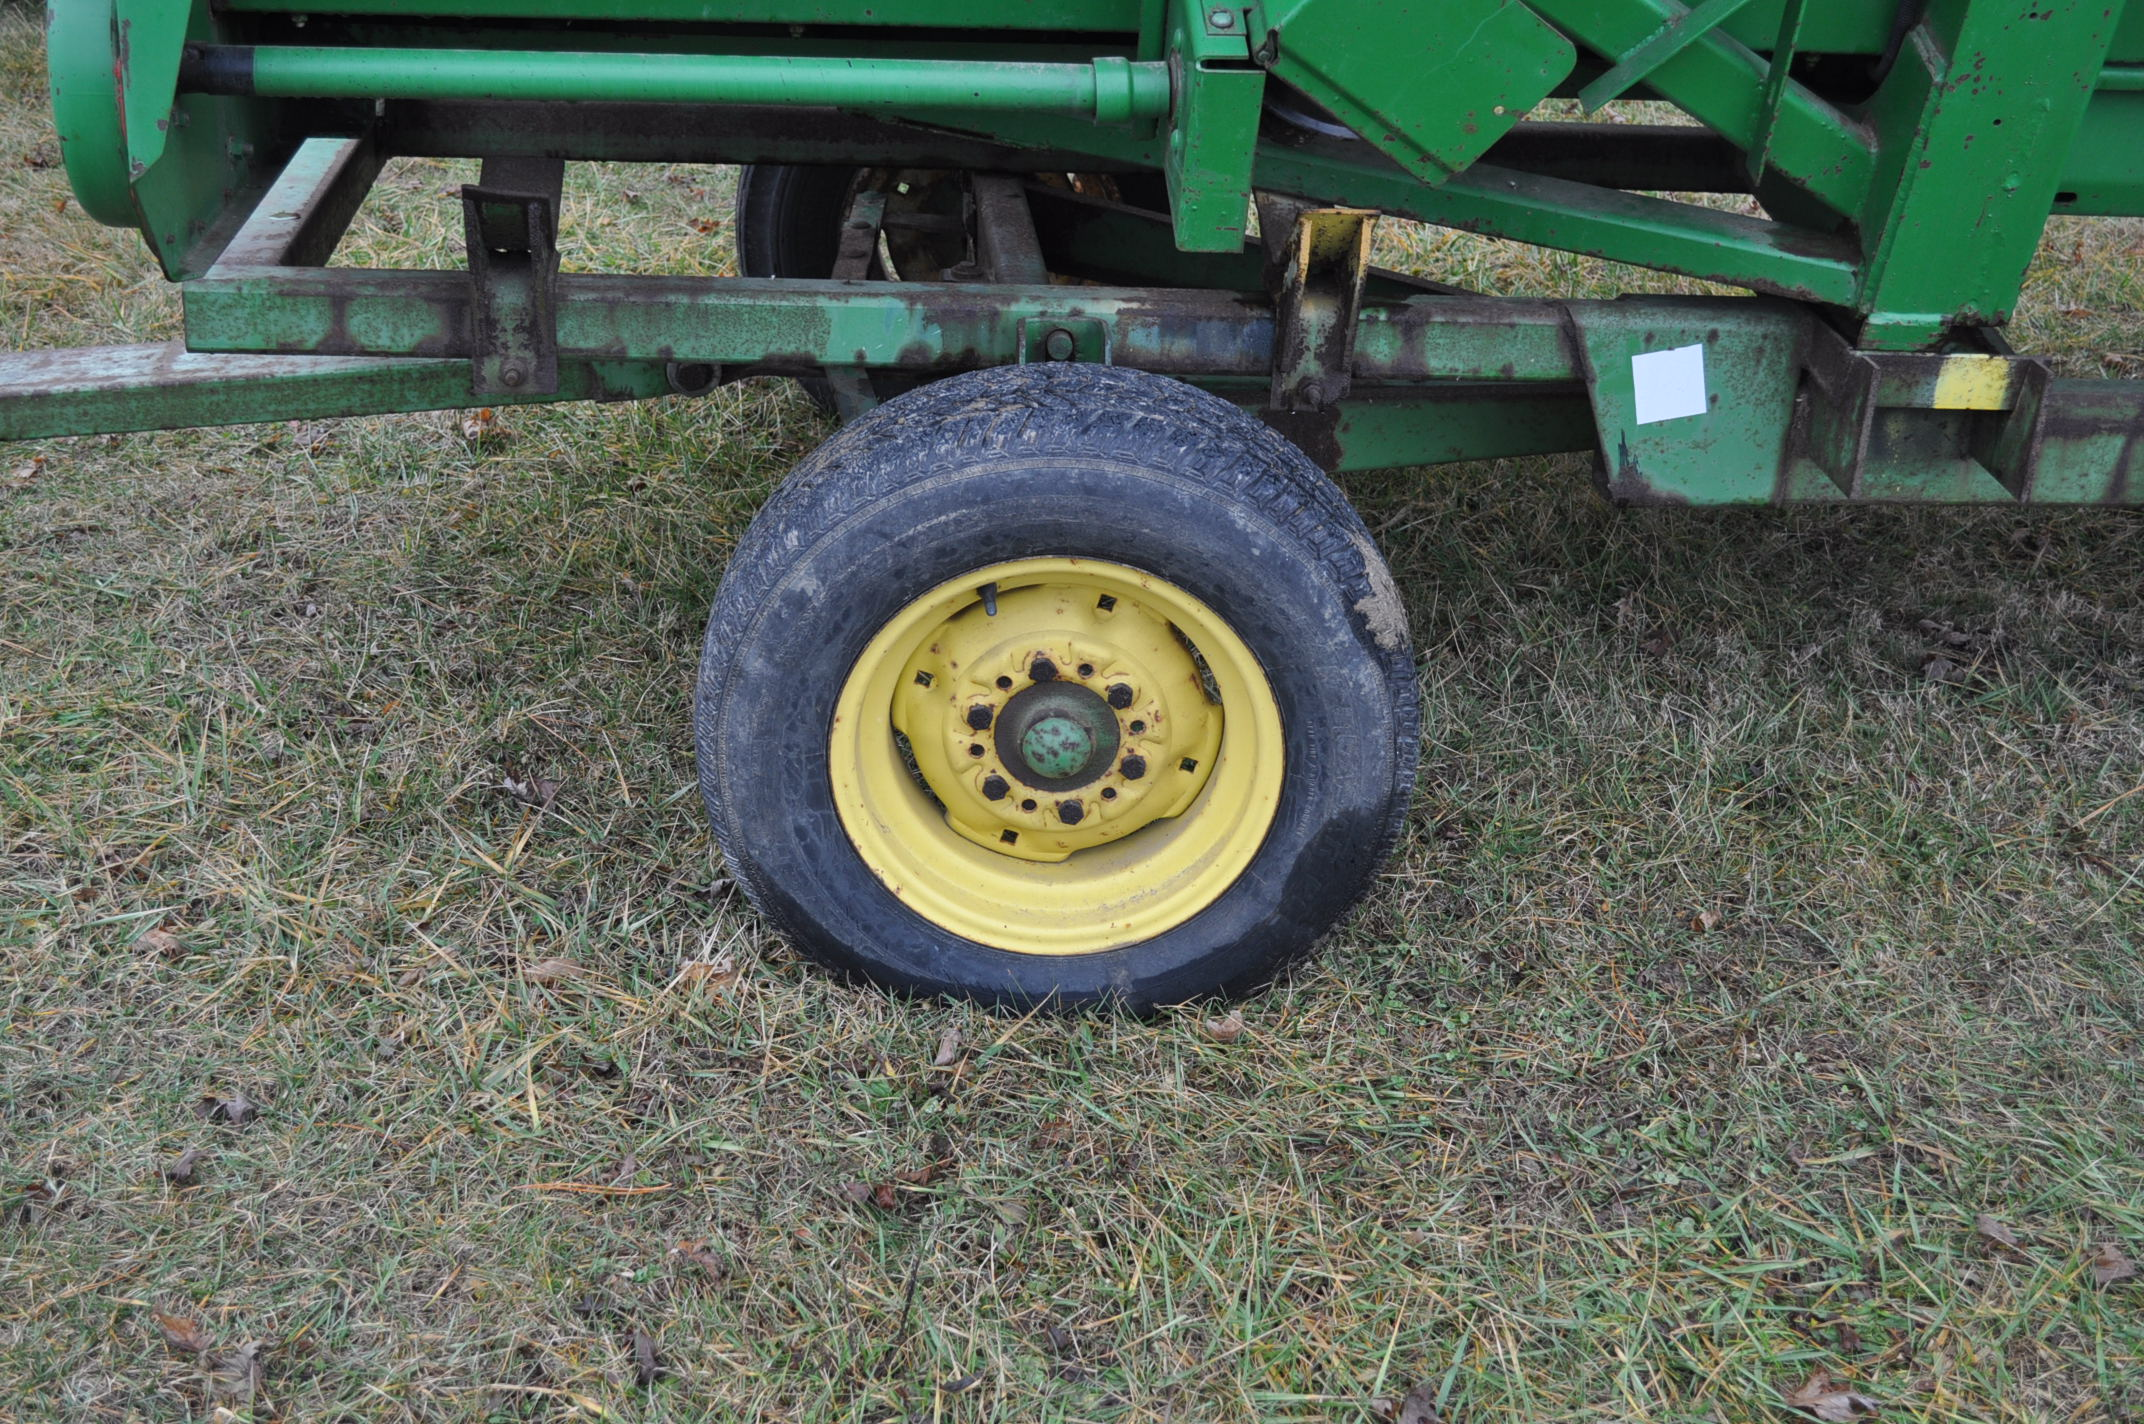 20' John Deere header wagon, 9.5 L-15 tires - Image 2 of 6